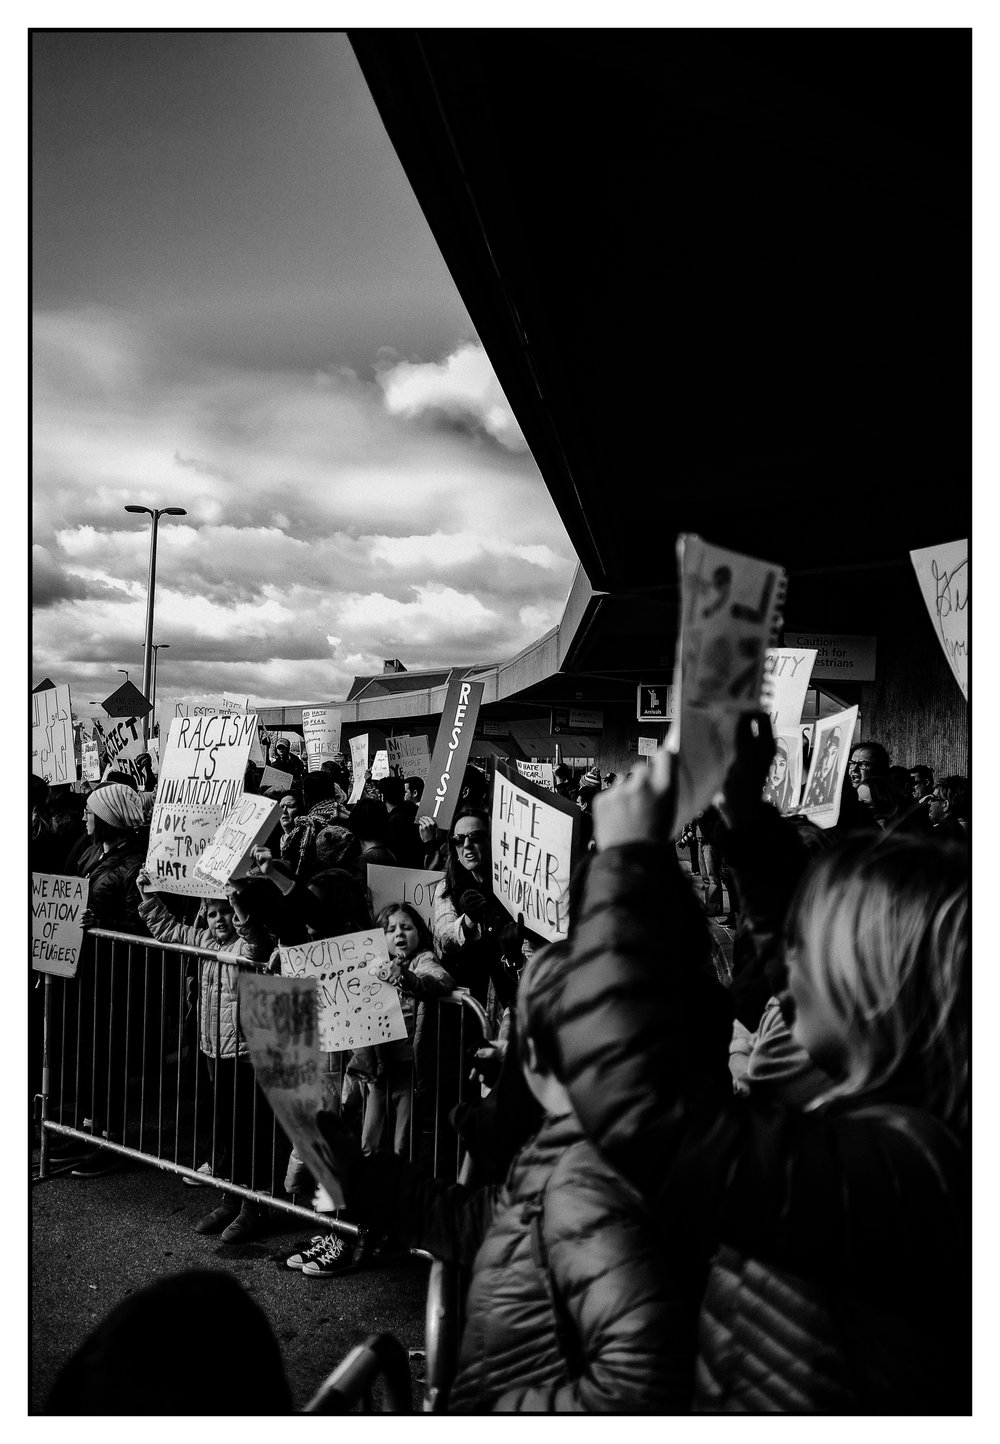 kci protest - kansas city missouri 2016